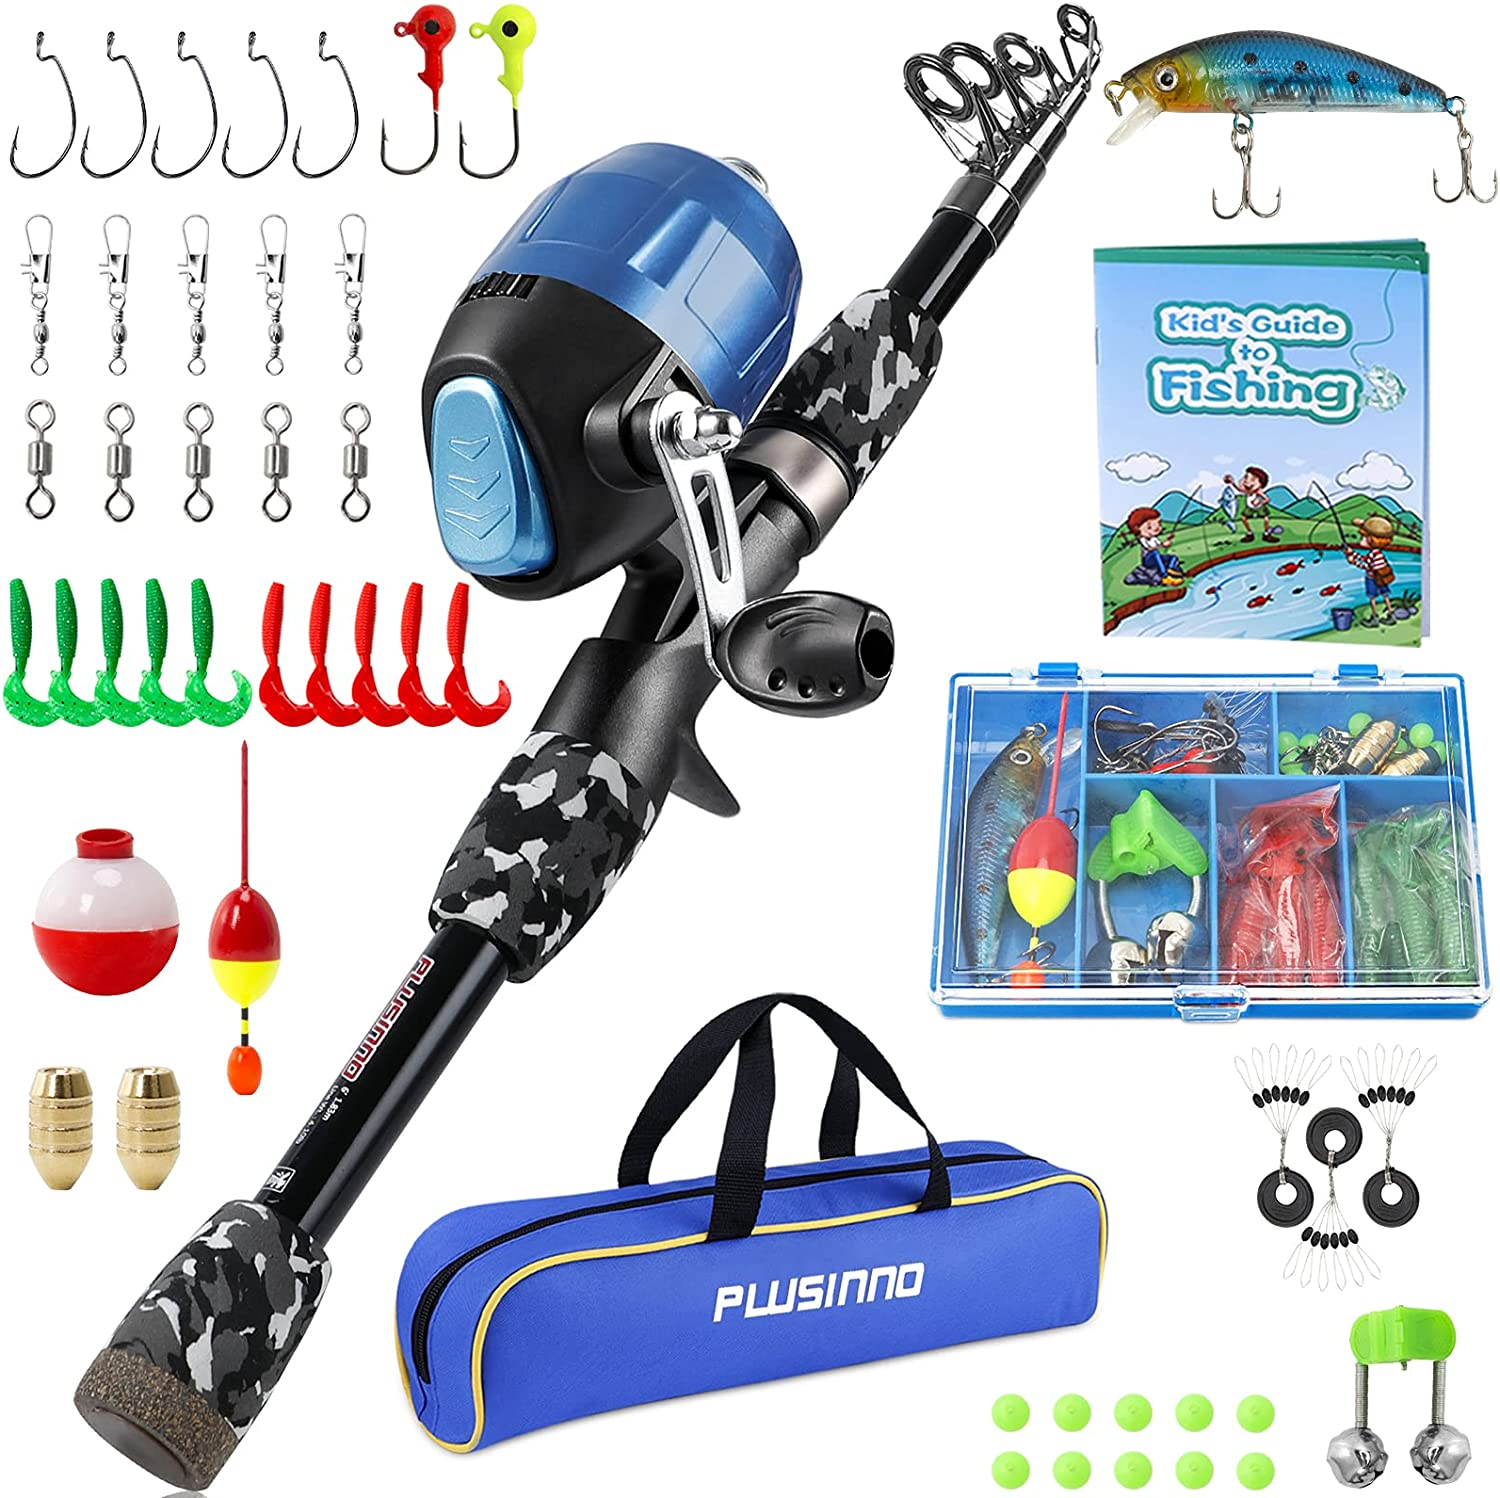 Kids Fishing Pole with Spincast Reel Telescopic Fishing Rod Combo Full Kits for